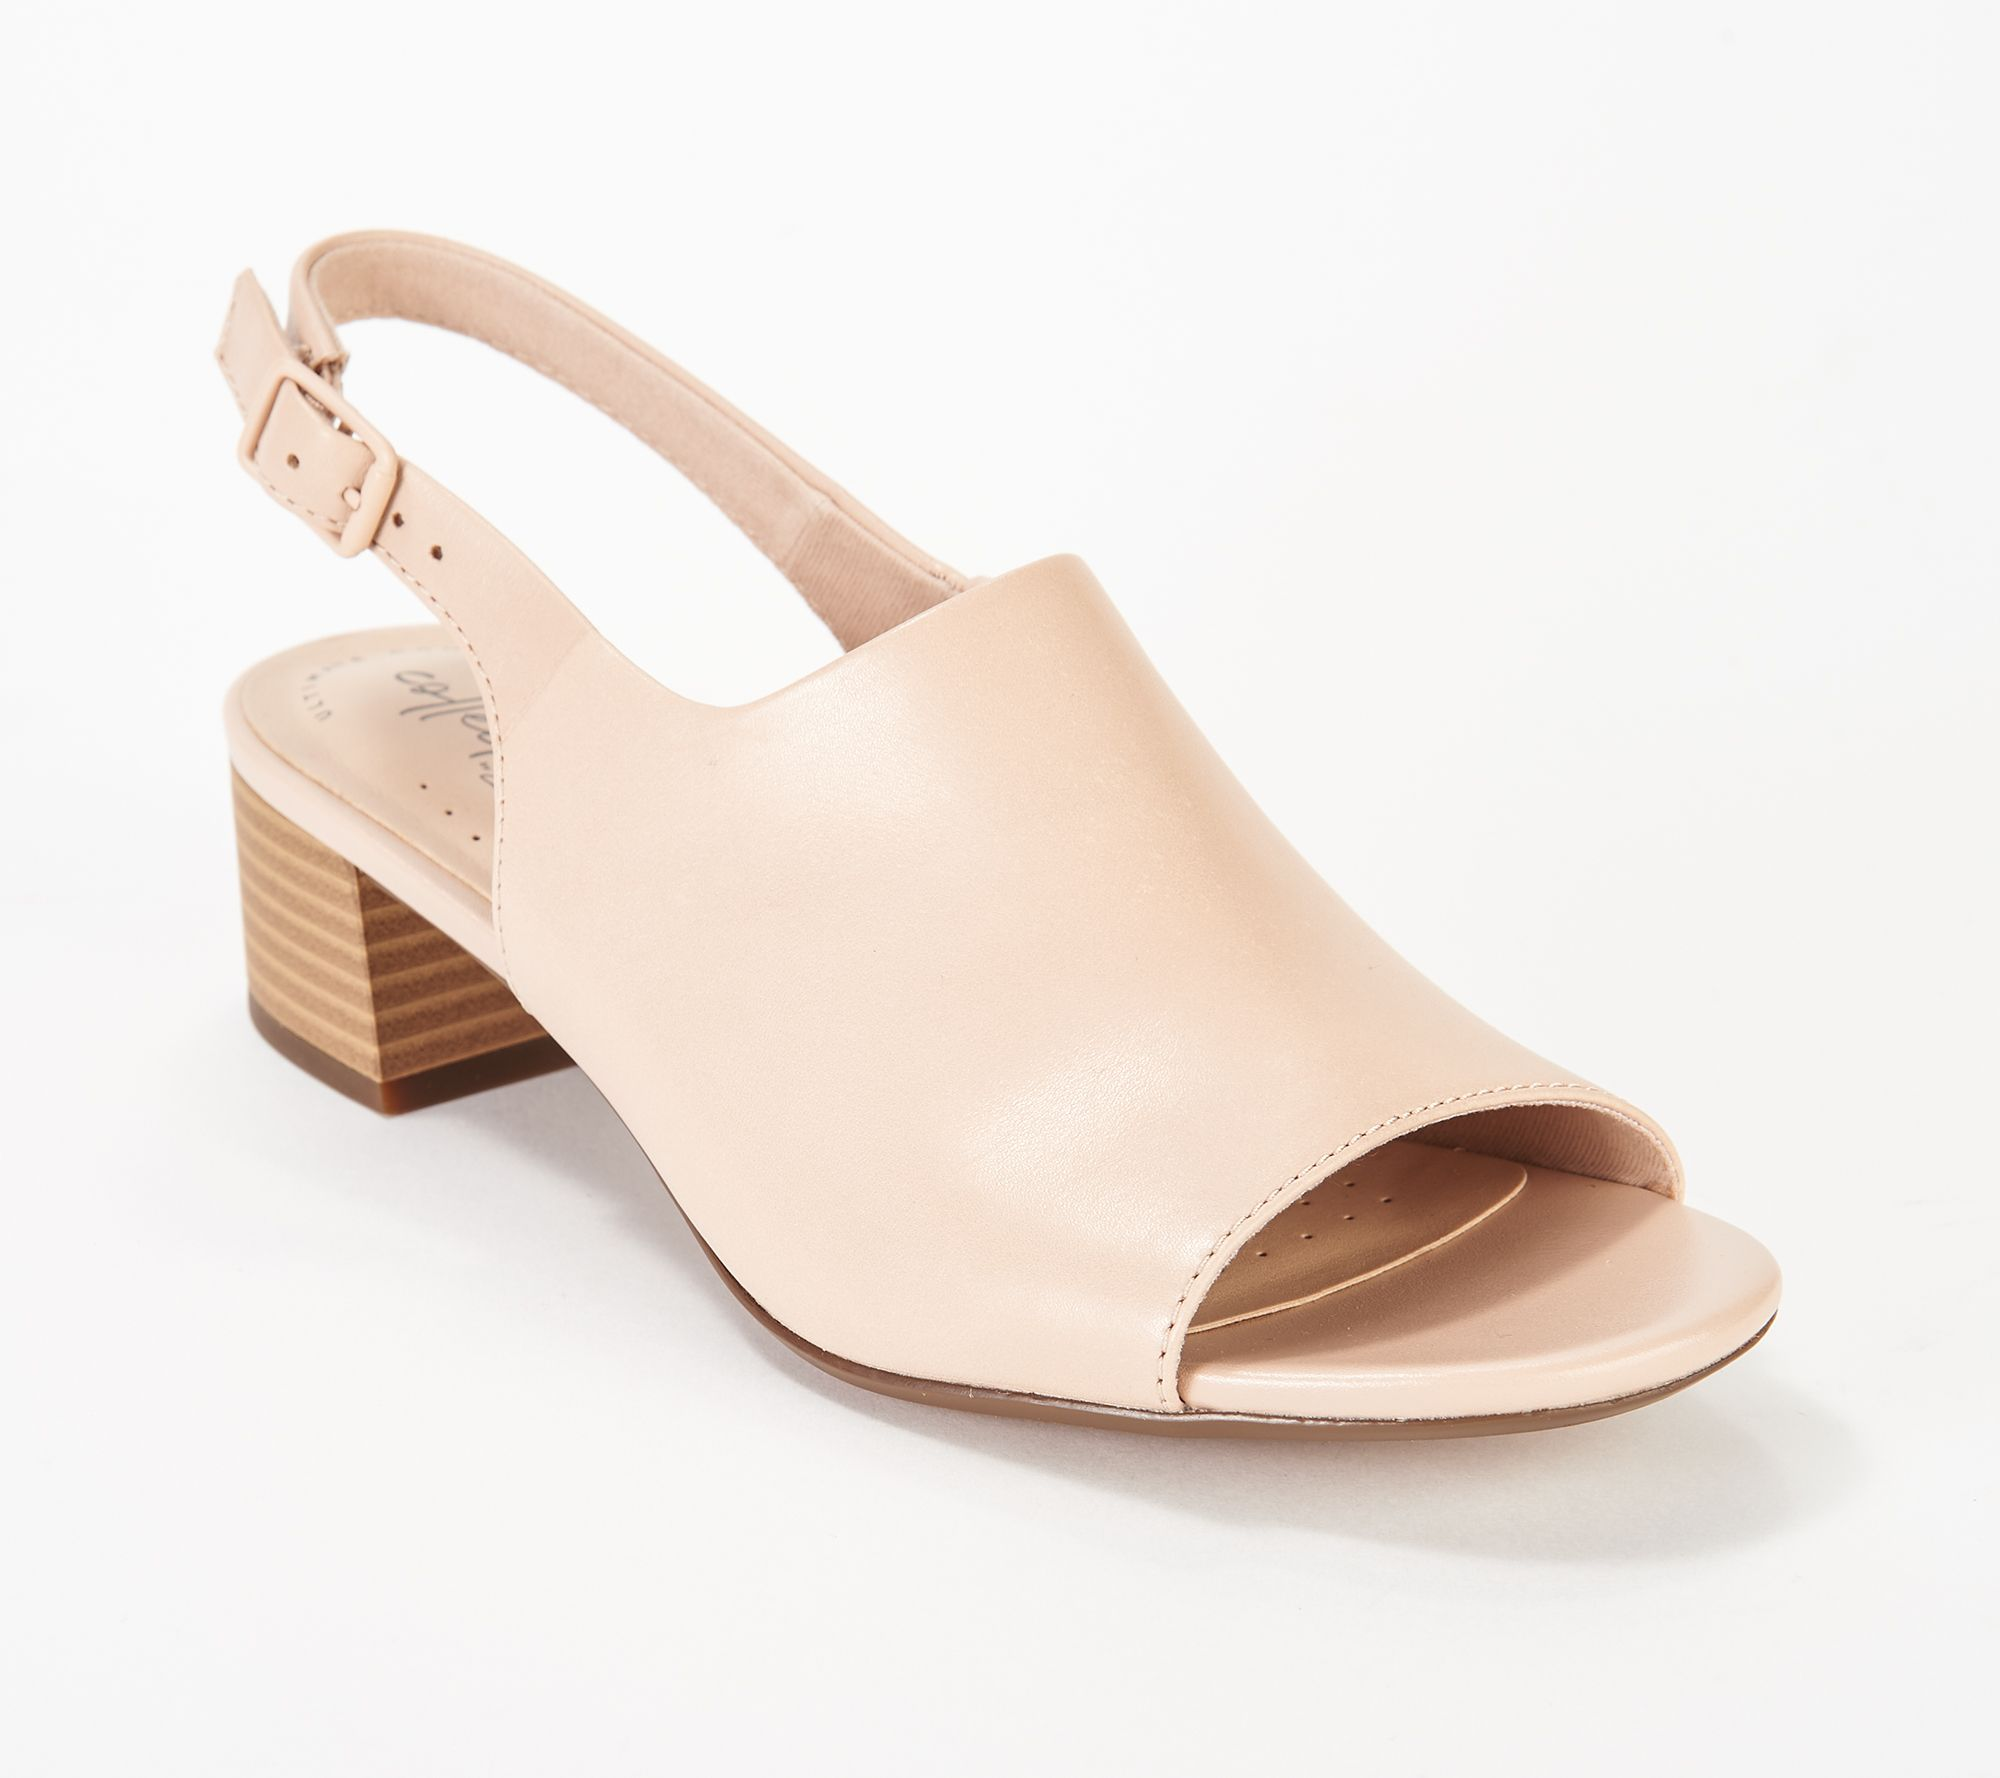 1acb6f032fe Clarks Leather Slingback Heeled Sandals- Elisa Kristie - Page 1 — QVC.com